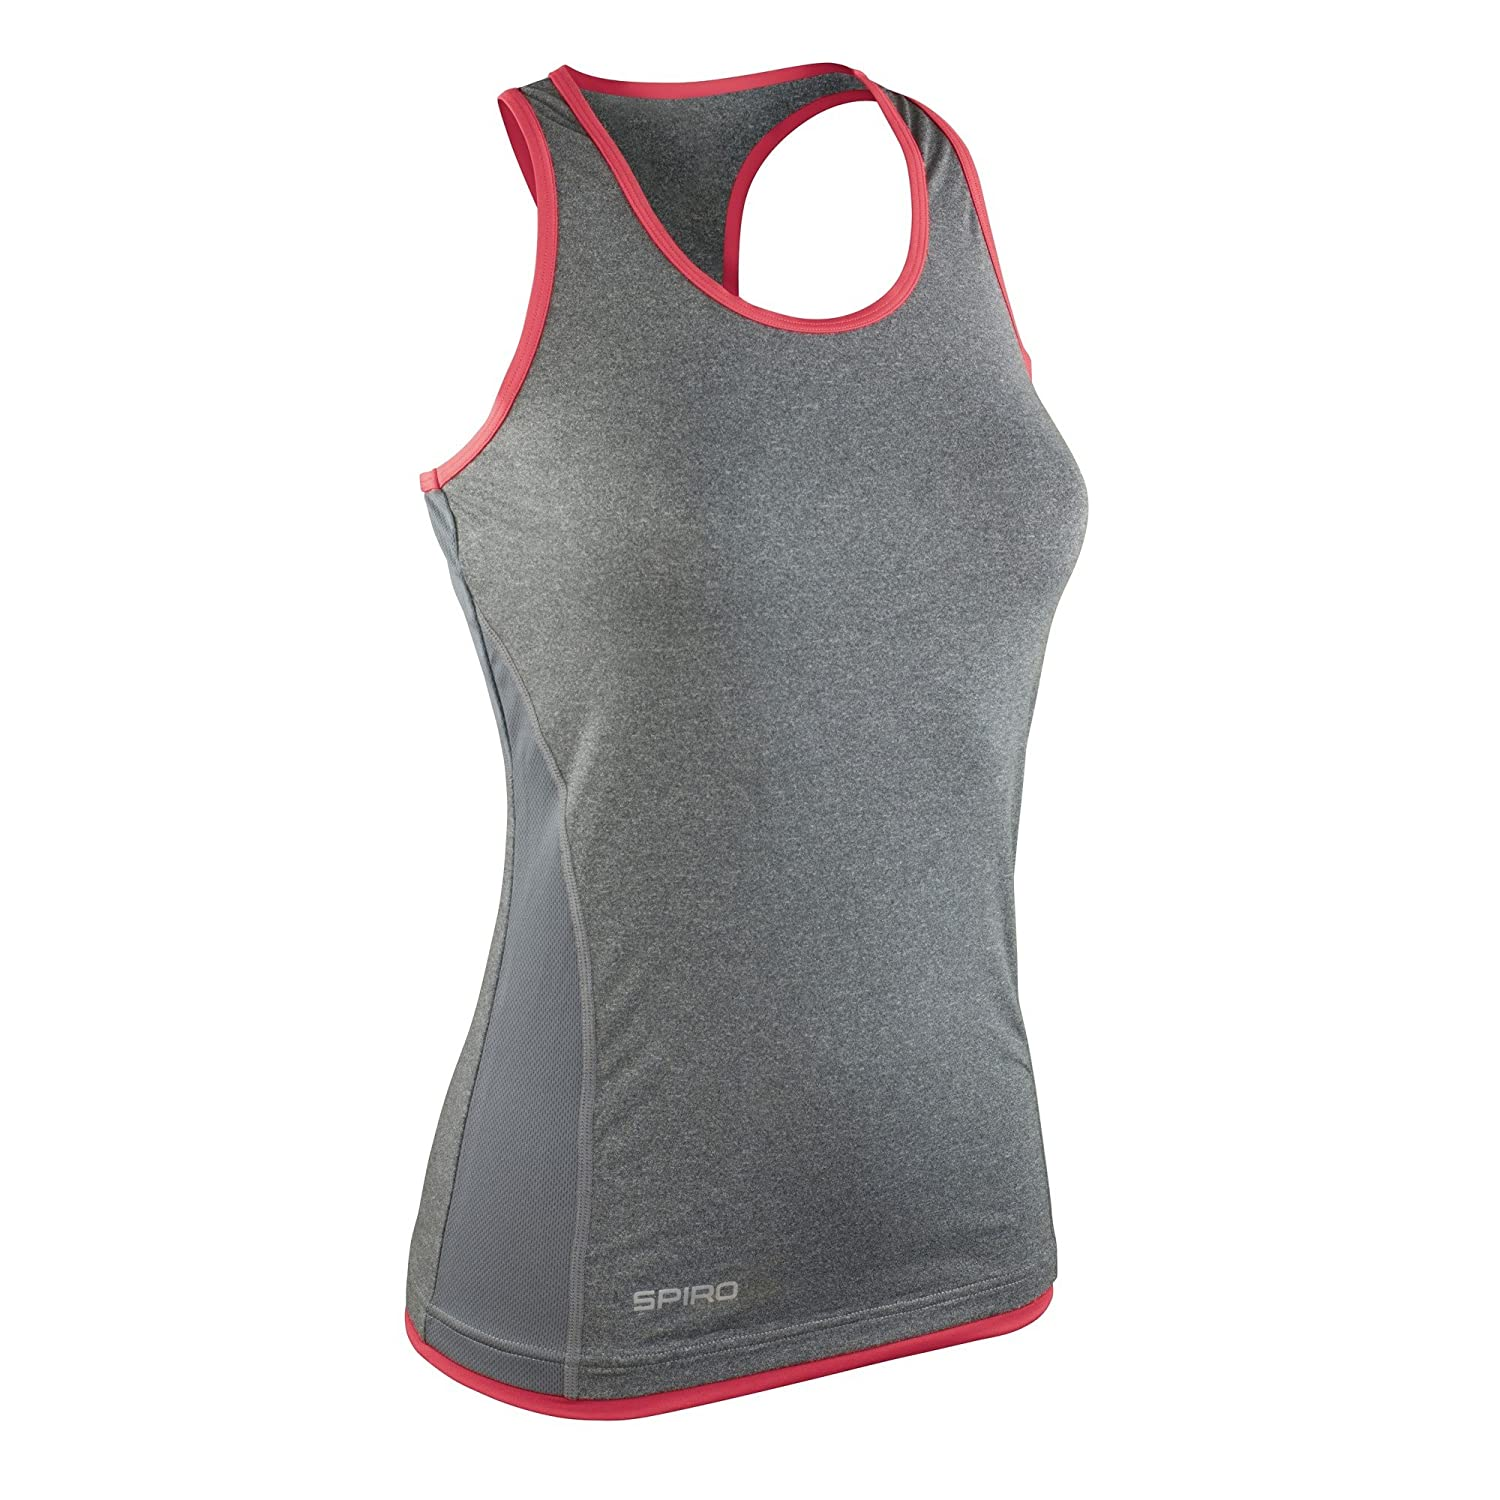 Ladies Keep Fit Gym Vest Top Workout Lightweight Quickdry Grey Marl Exercise New